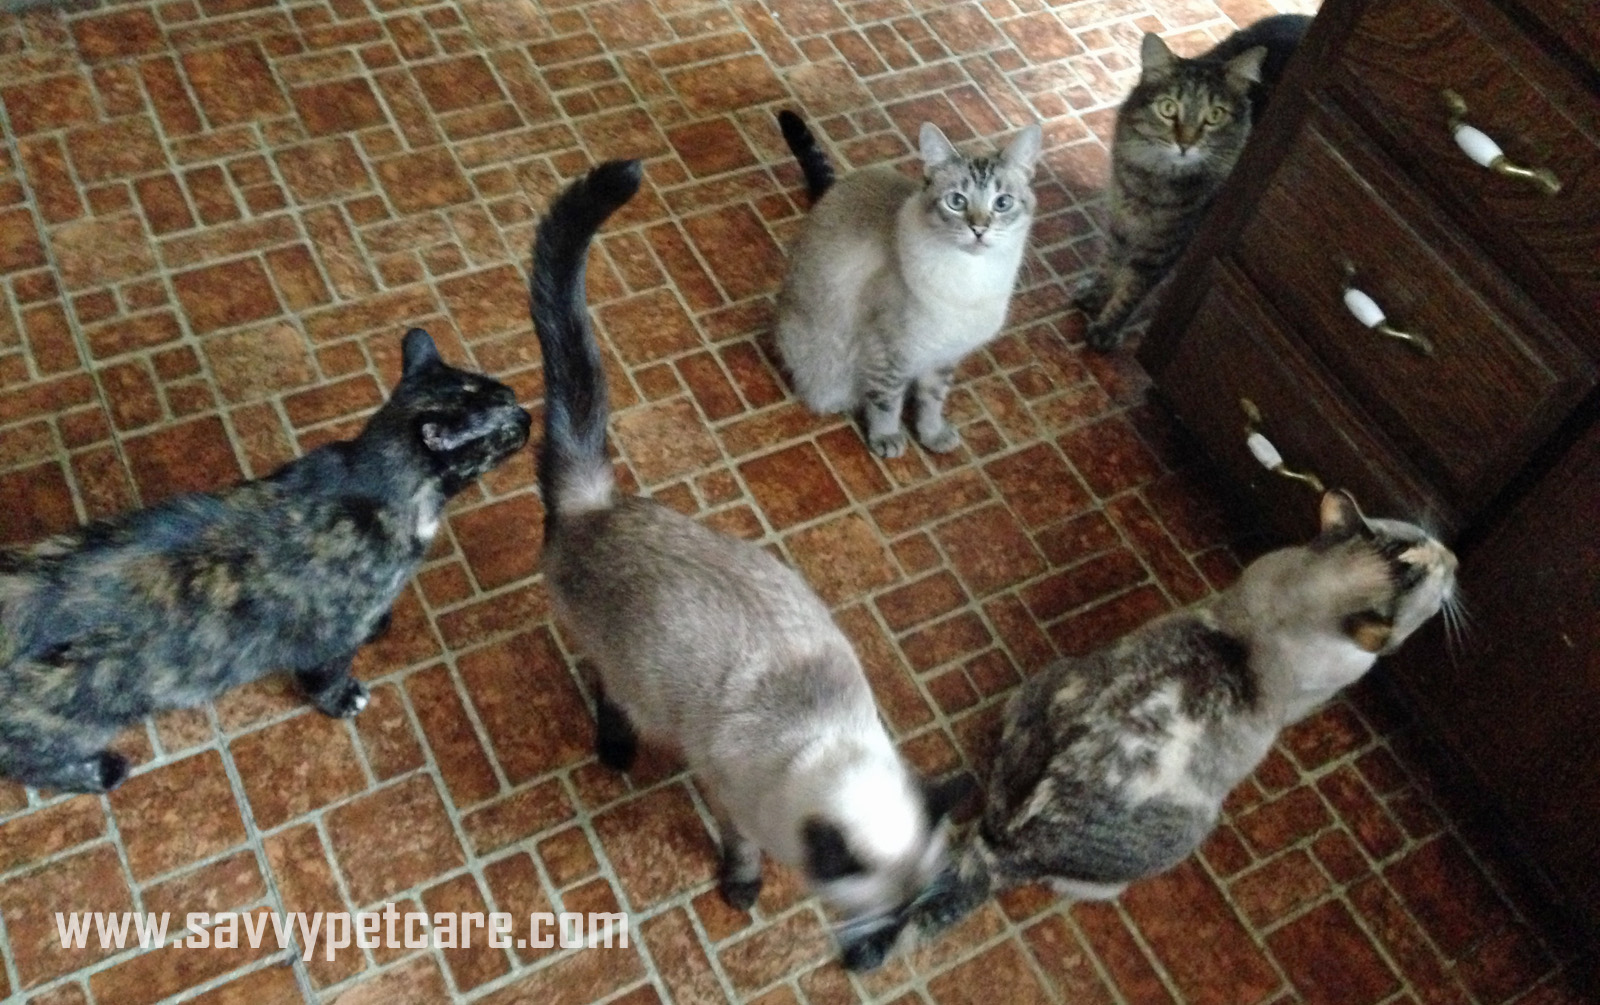 Gathering for their favorite treat -- raw chicken